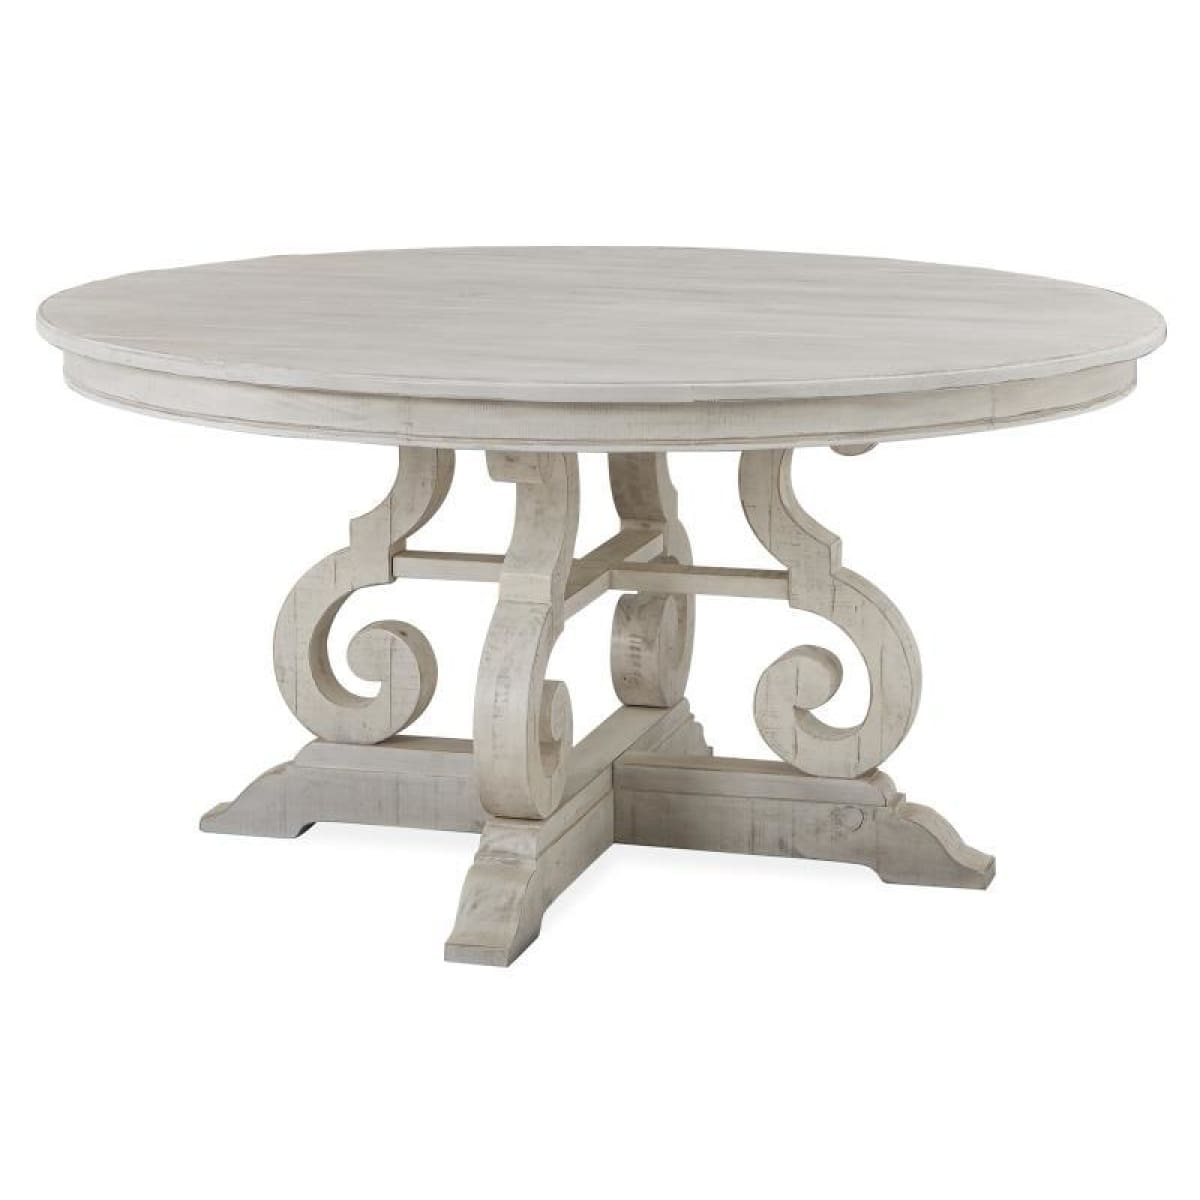 Bronwyn 60 Round Dining Table - DININGCOUNTERHEIGHT